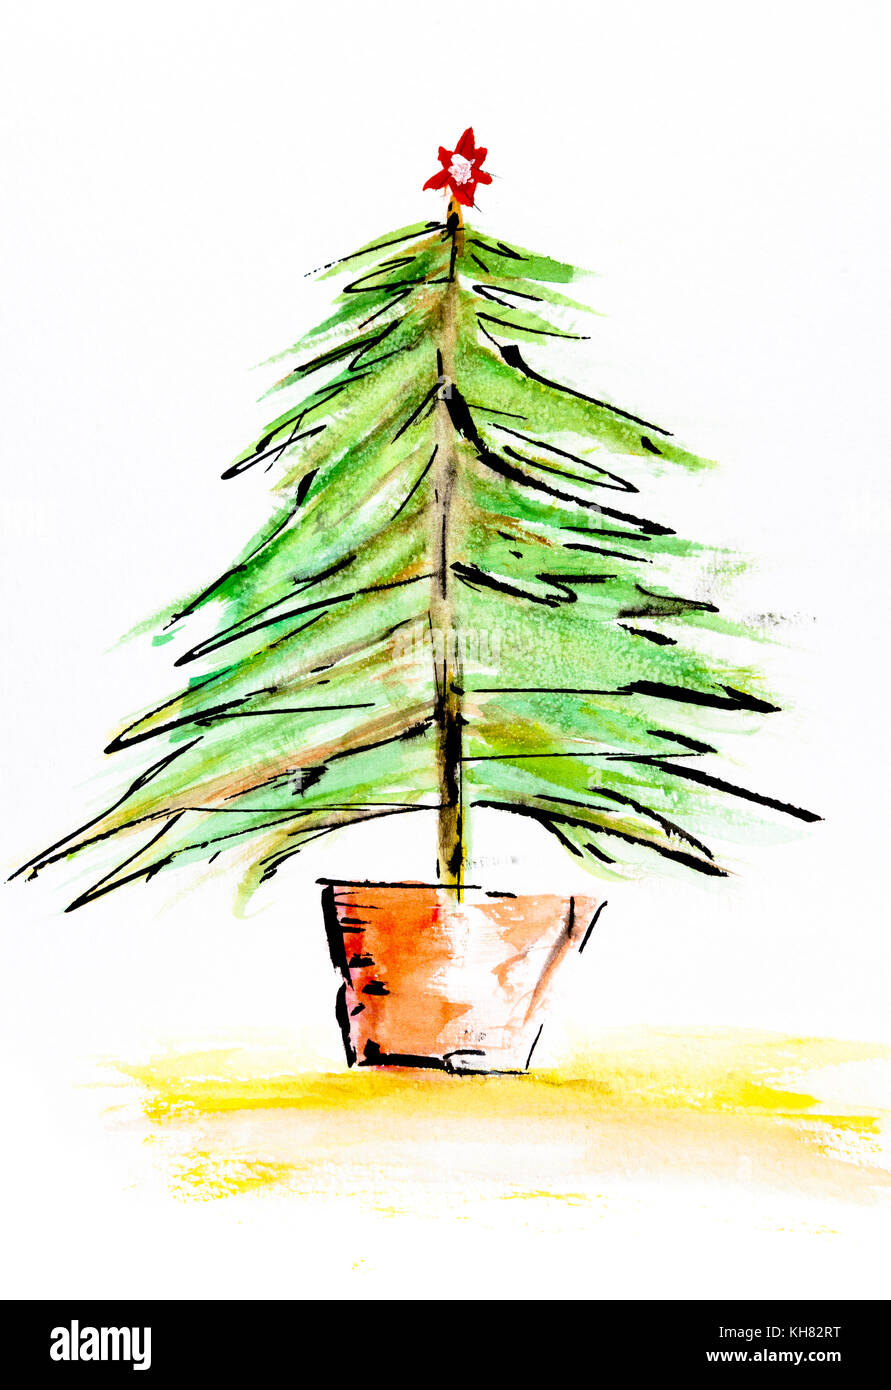 Christmas Tree Without Decorations On A White Background For Cutout